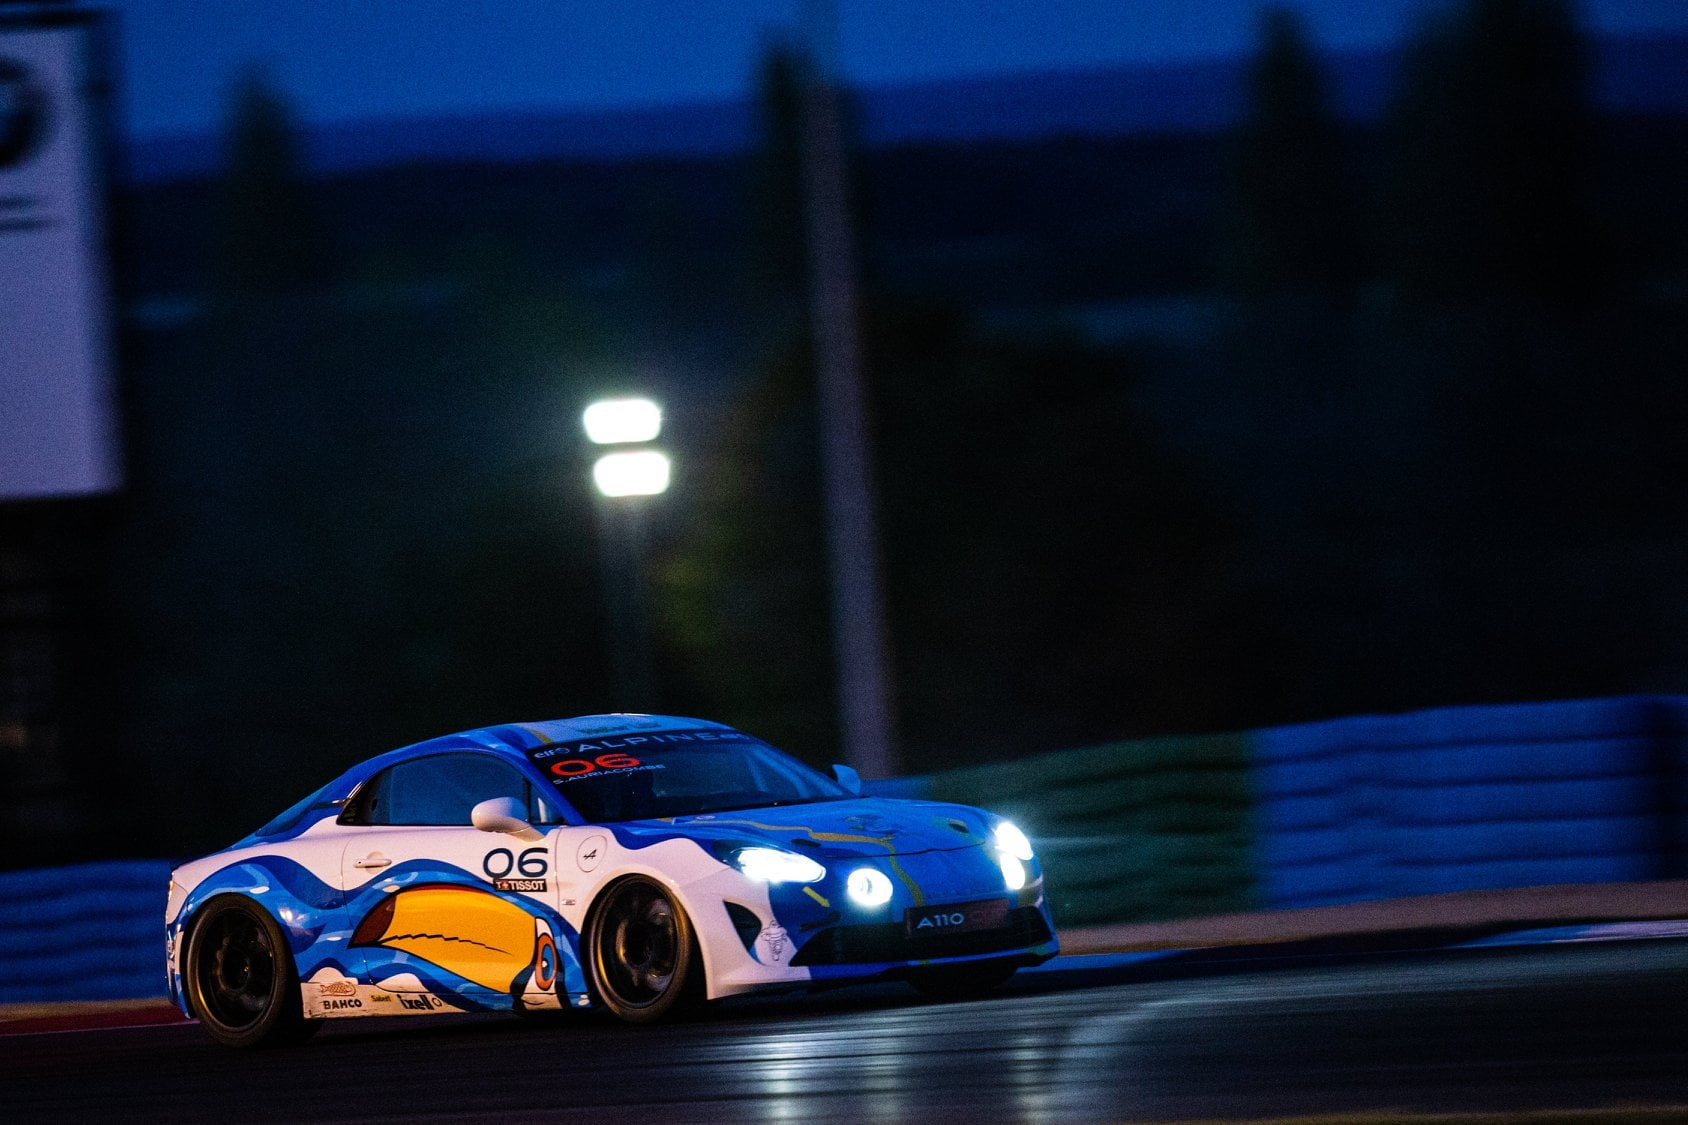 Alpine Elf Europa Cup 2020 Magny Cours A110 Cup 19 | Alpine Elf Europa Cup 2020: Jean-Baptiste Mela triomphe à Magny-Cours